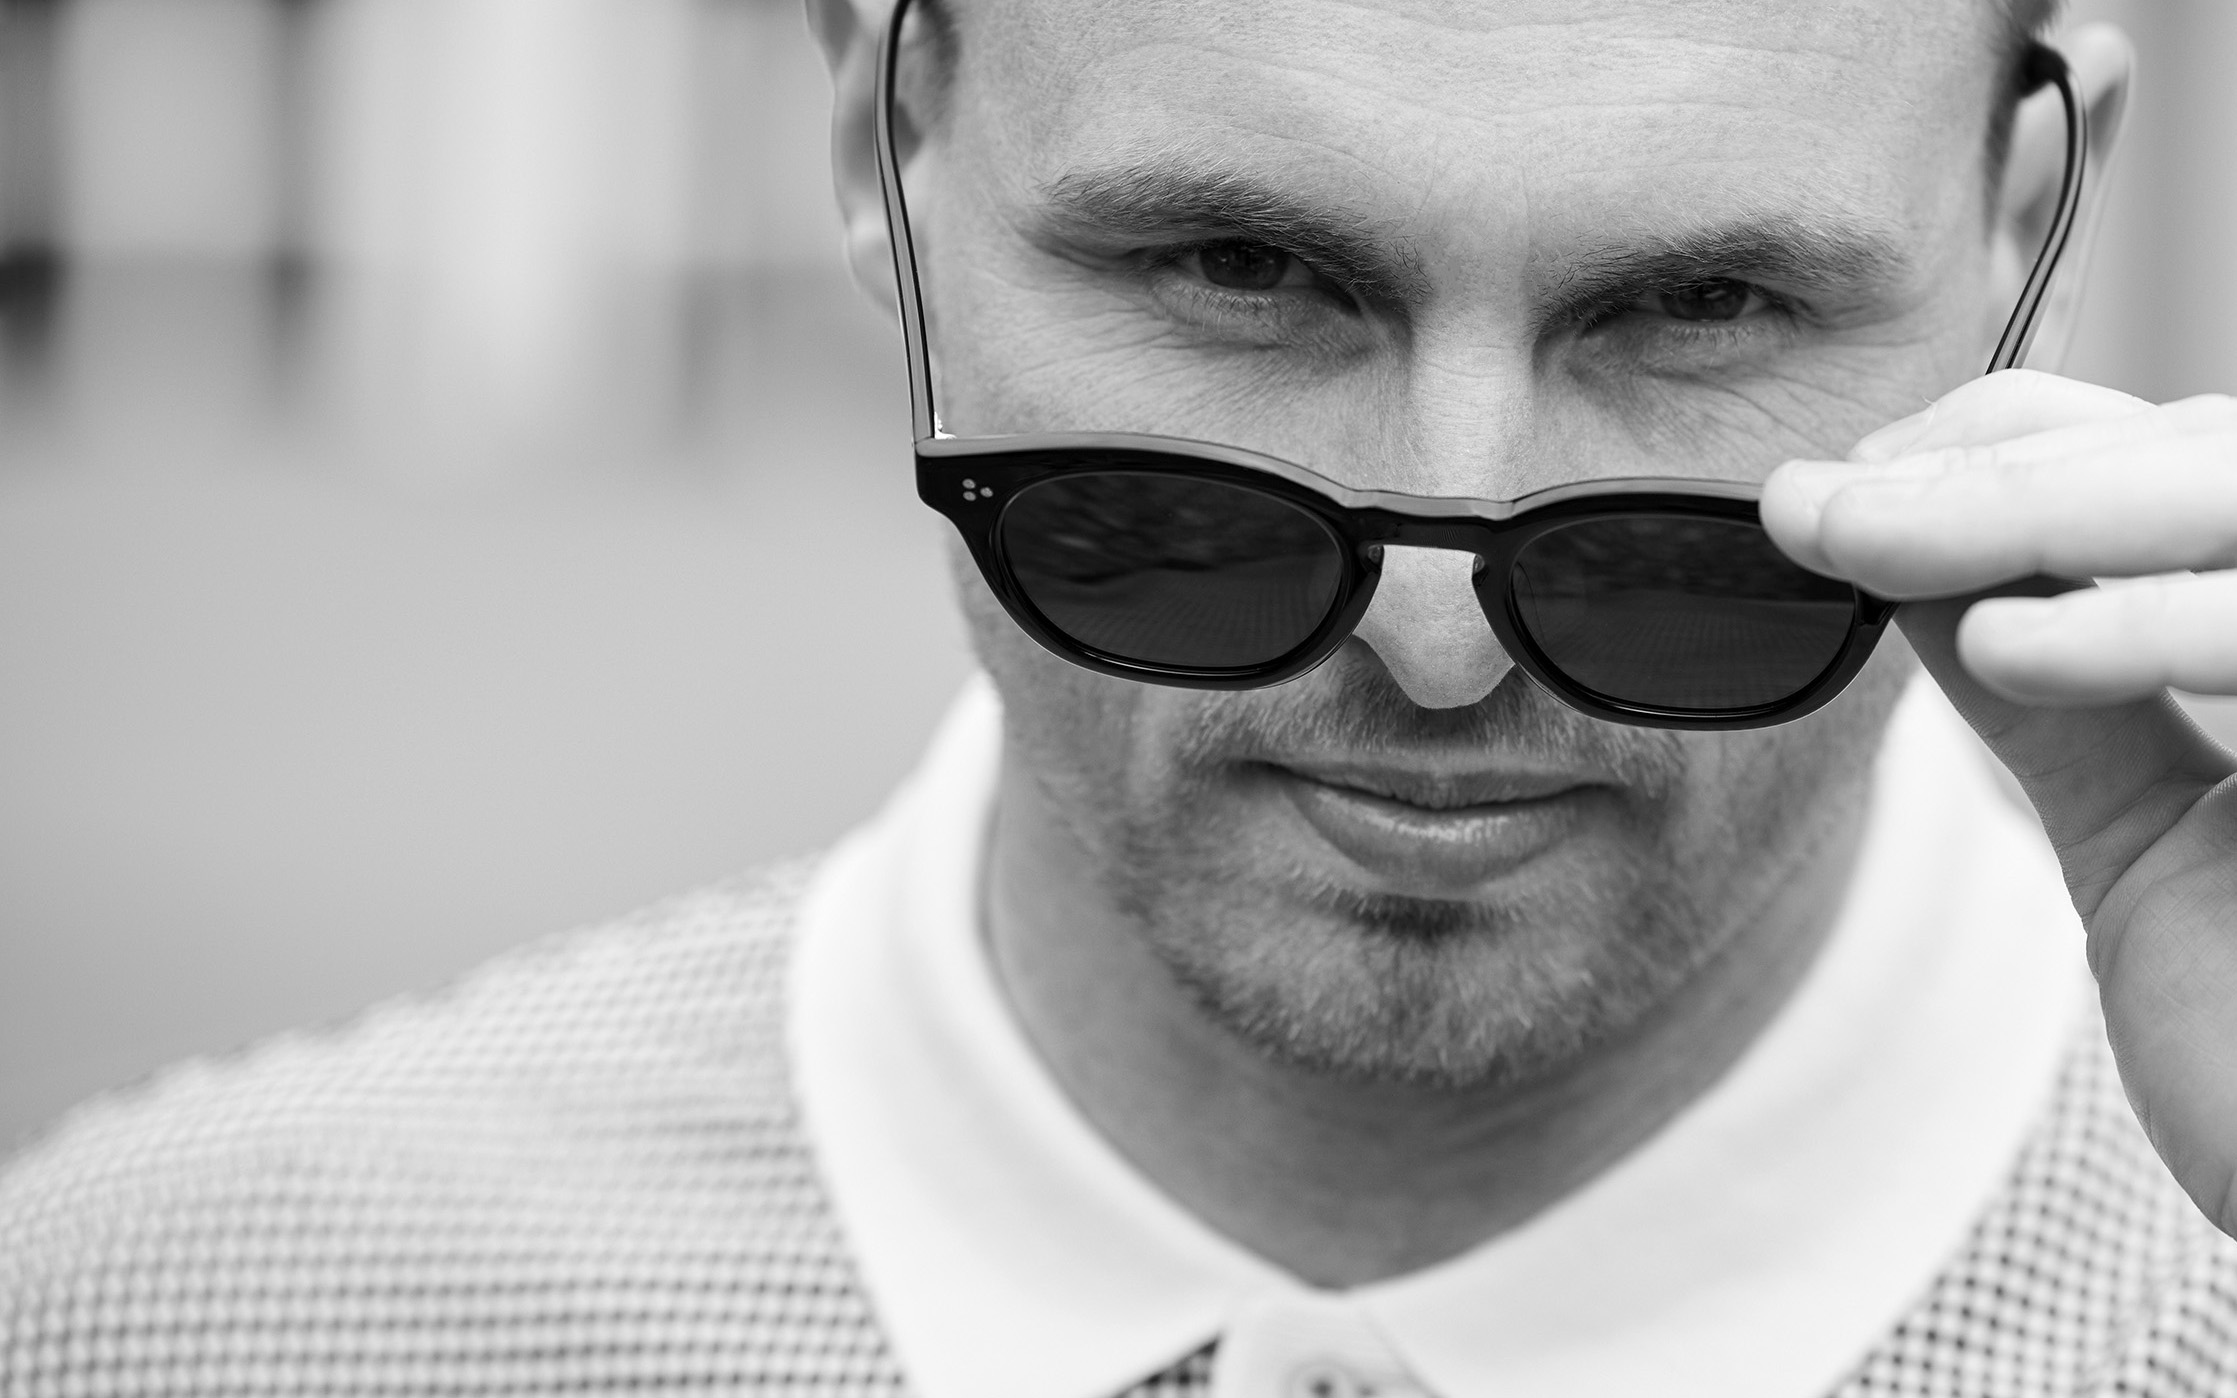 David Stockdale looking at the camera while holding a pair of sunglasses on the tip of his nose